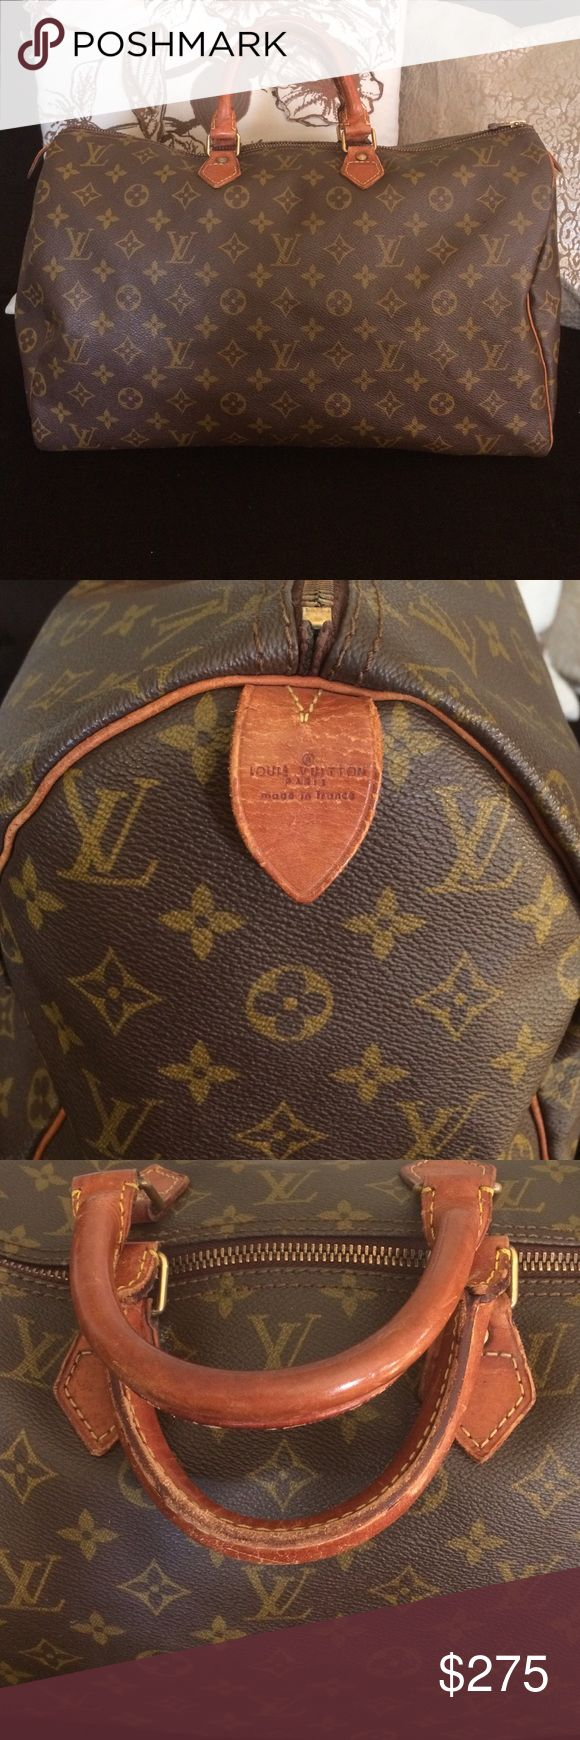 Authentic Louis Vuitton Speedy 40 Monogram Vintage, great condition, from a clean, smoke free home. No trades. Dimensions 14 x 8 Bags Totes